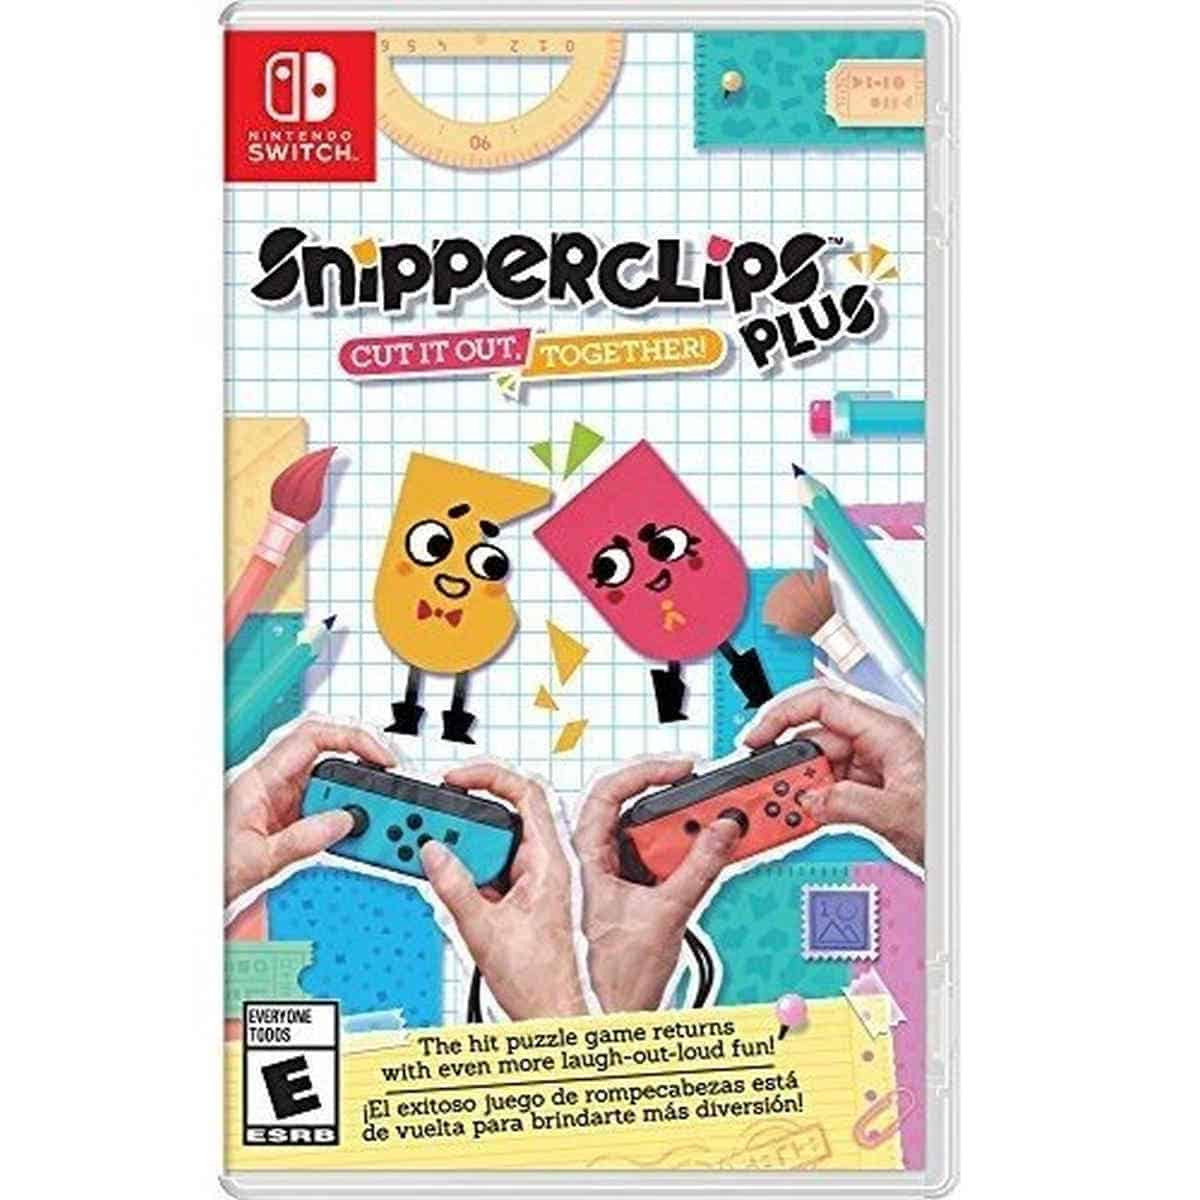 Snipperclips | Best Nintendo Switch Multiplayer Games